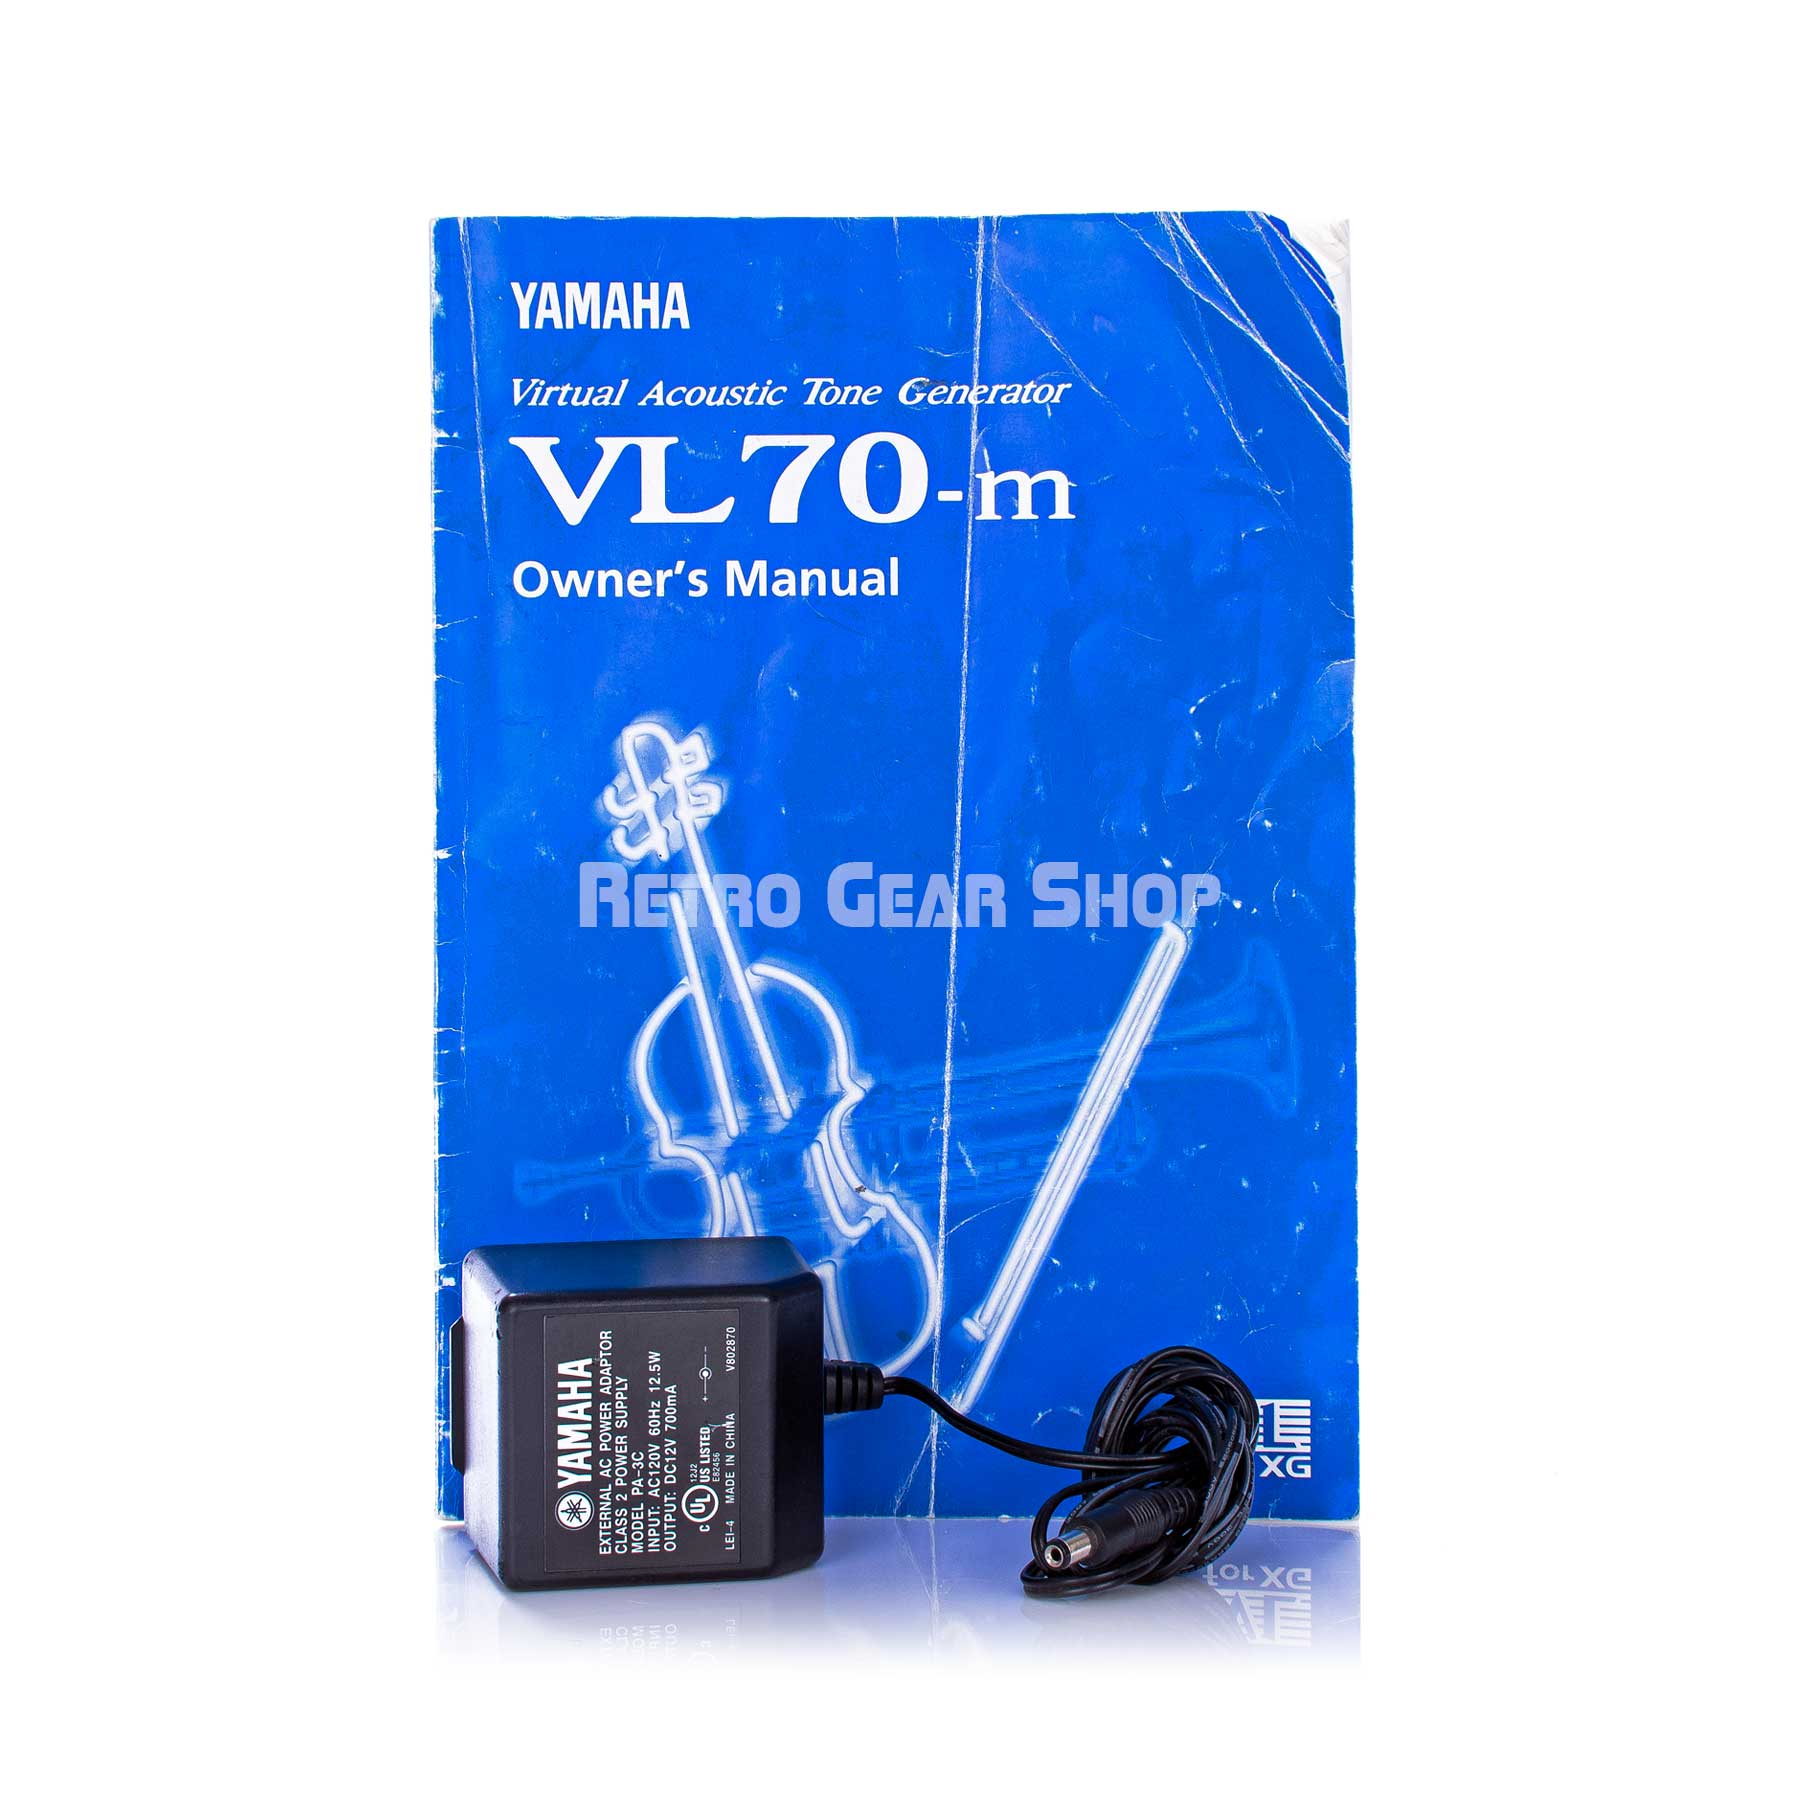 Yamaha VL70-m Manual Power Supply